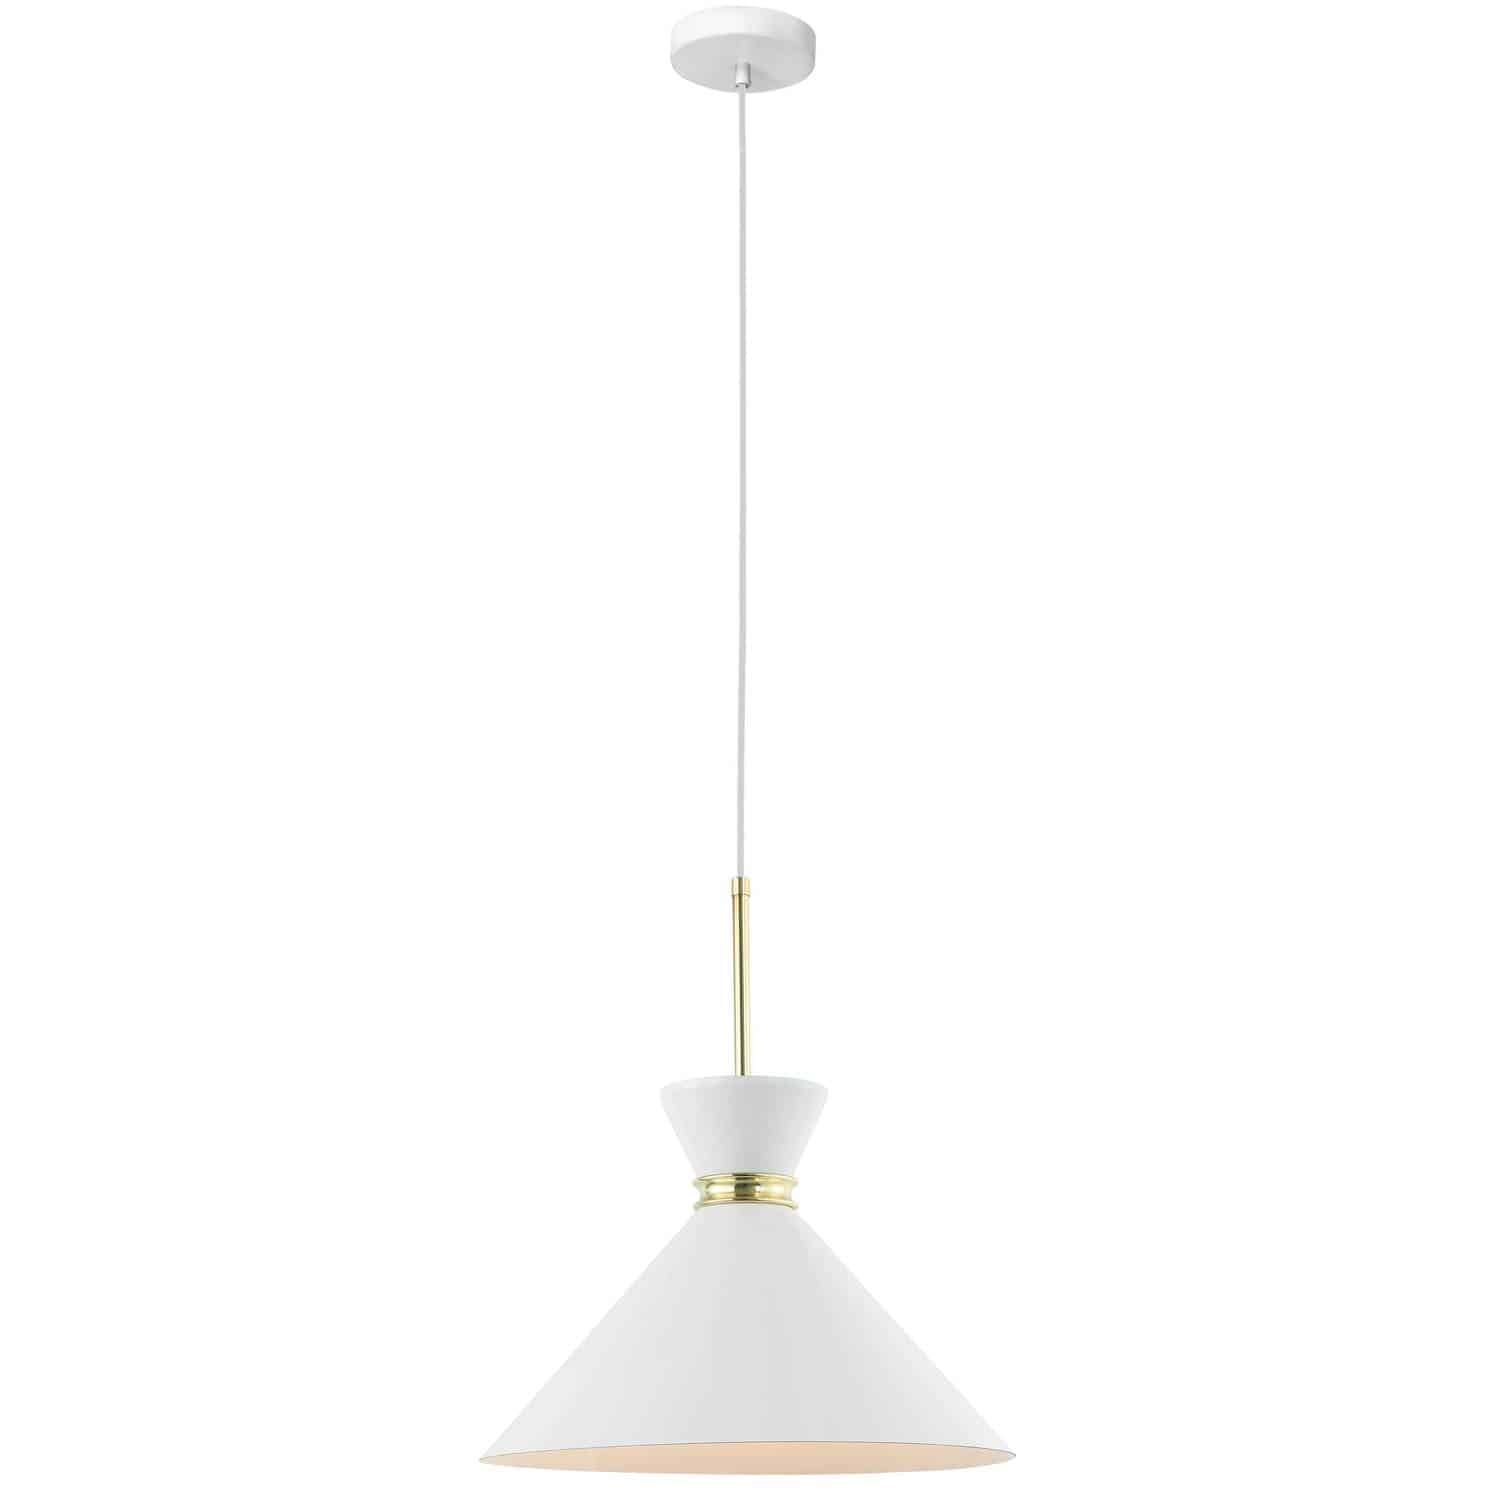 1 Light Incandescent Pendant, Gloss White Shade with Aged Brass Accent